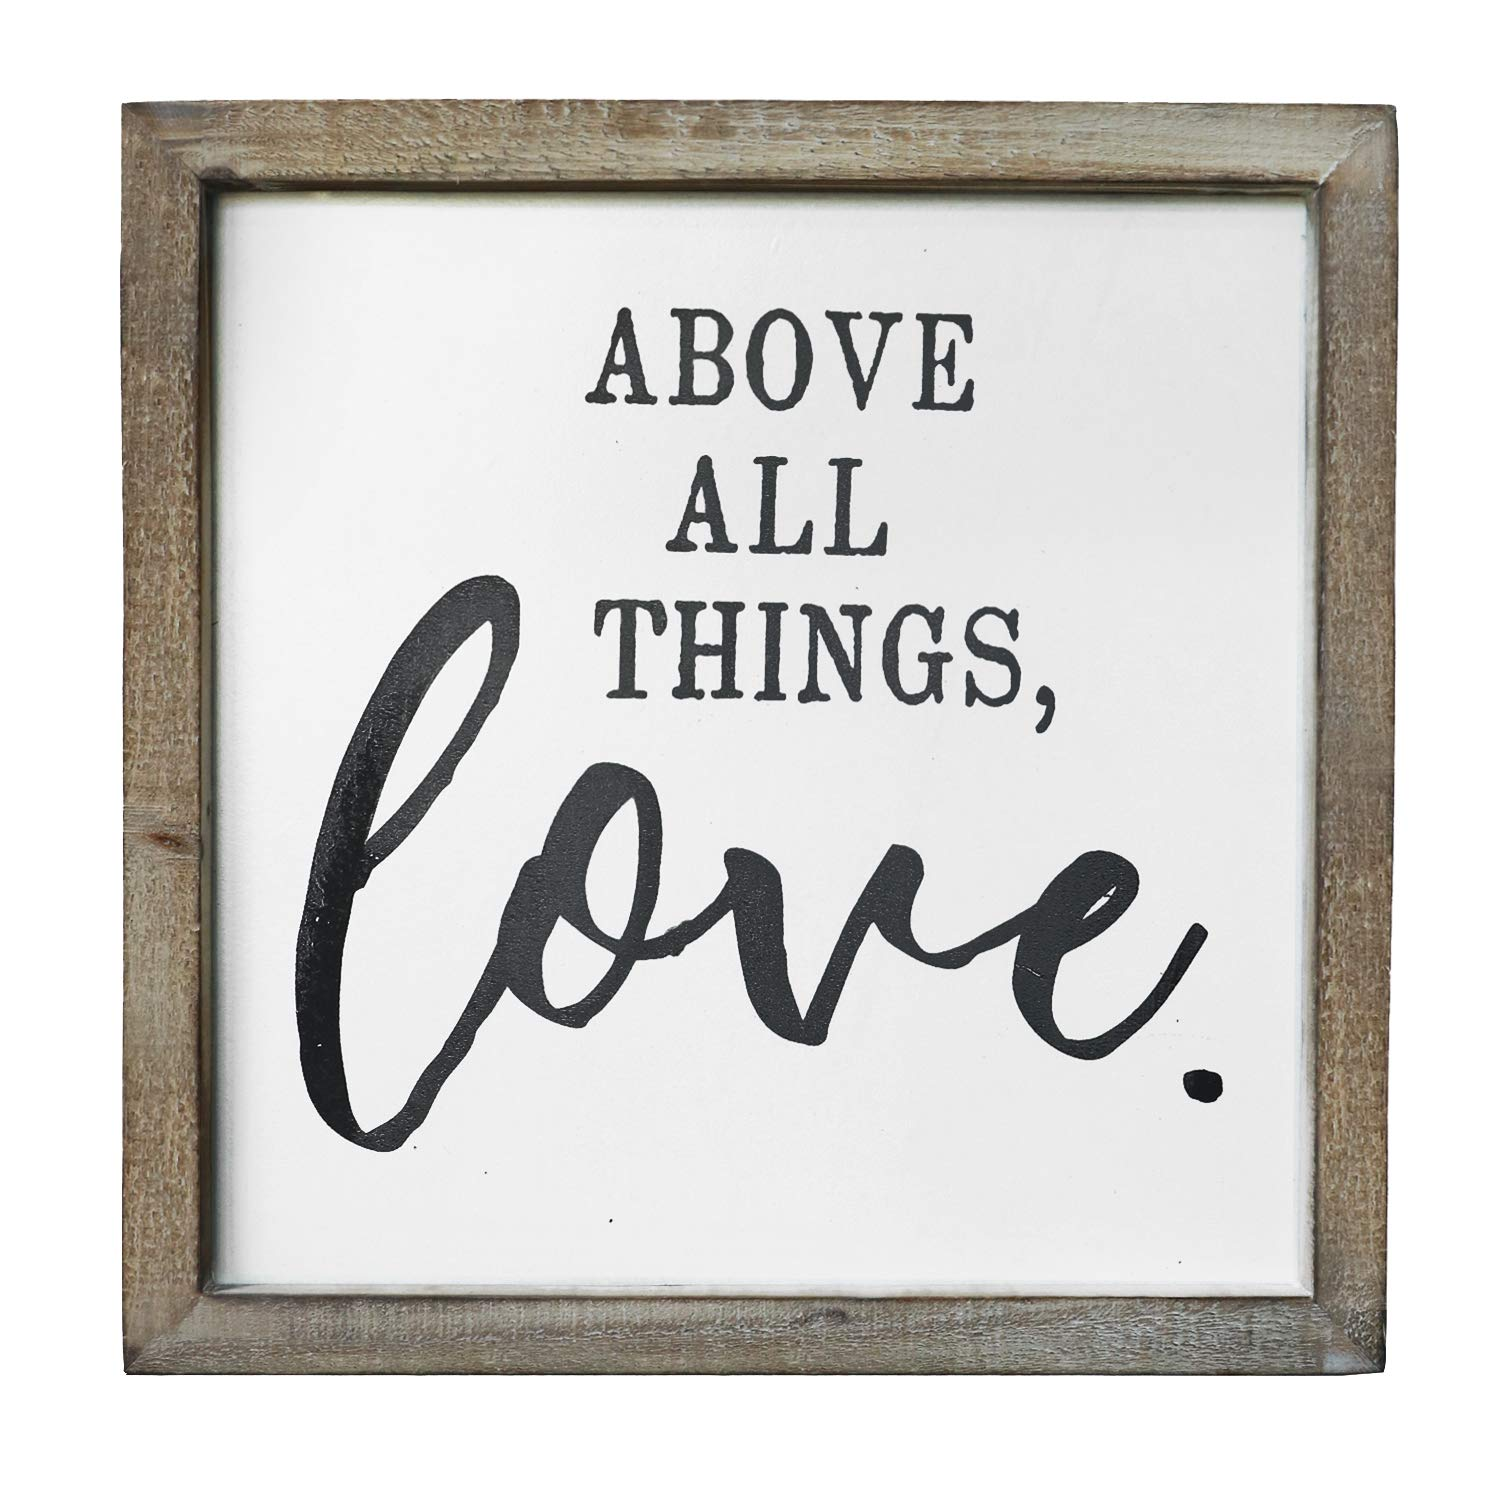 SANY DAYO HOME Wall Decor Signs with Inspirational Sayings 12 x 12 inches Rustic Wood Framed Modern Farmhouse Wall Hanging Art - Above All Things, Love